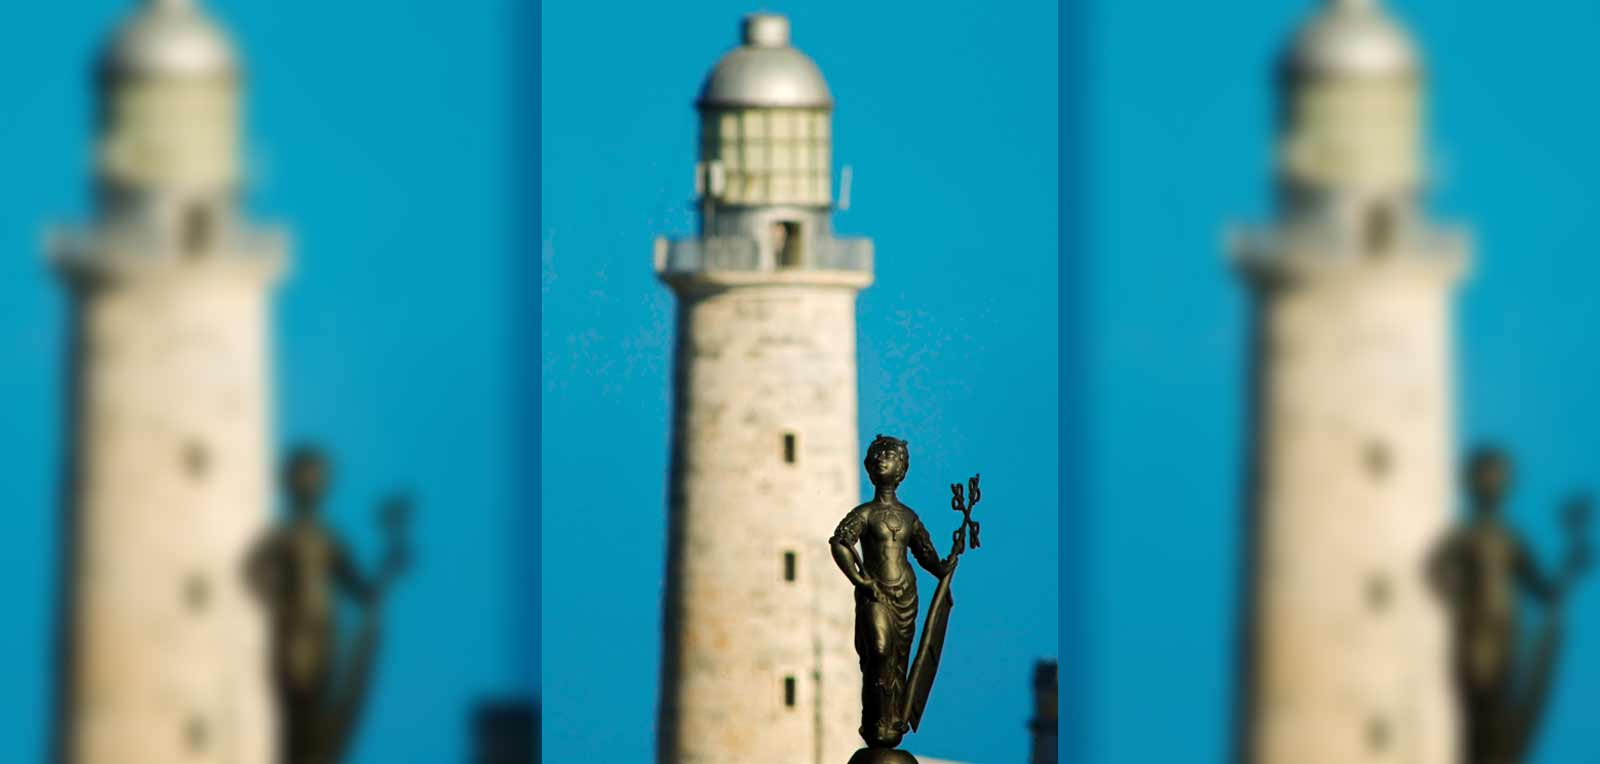 The Lighthouse and the Giraldilla: two icons of Havana